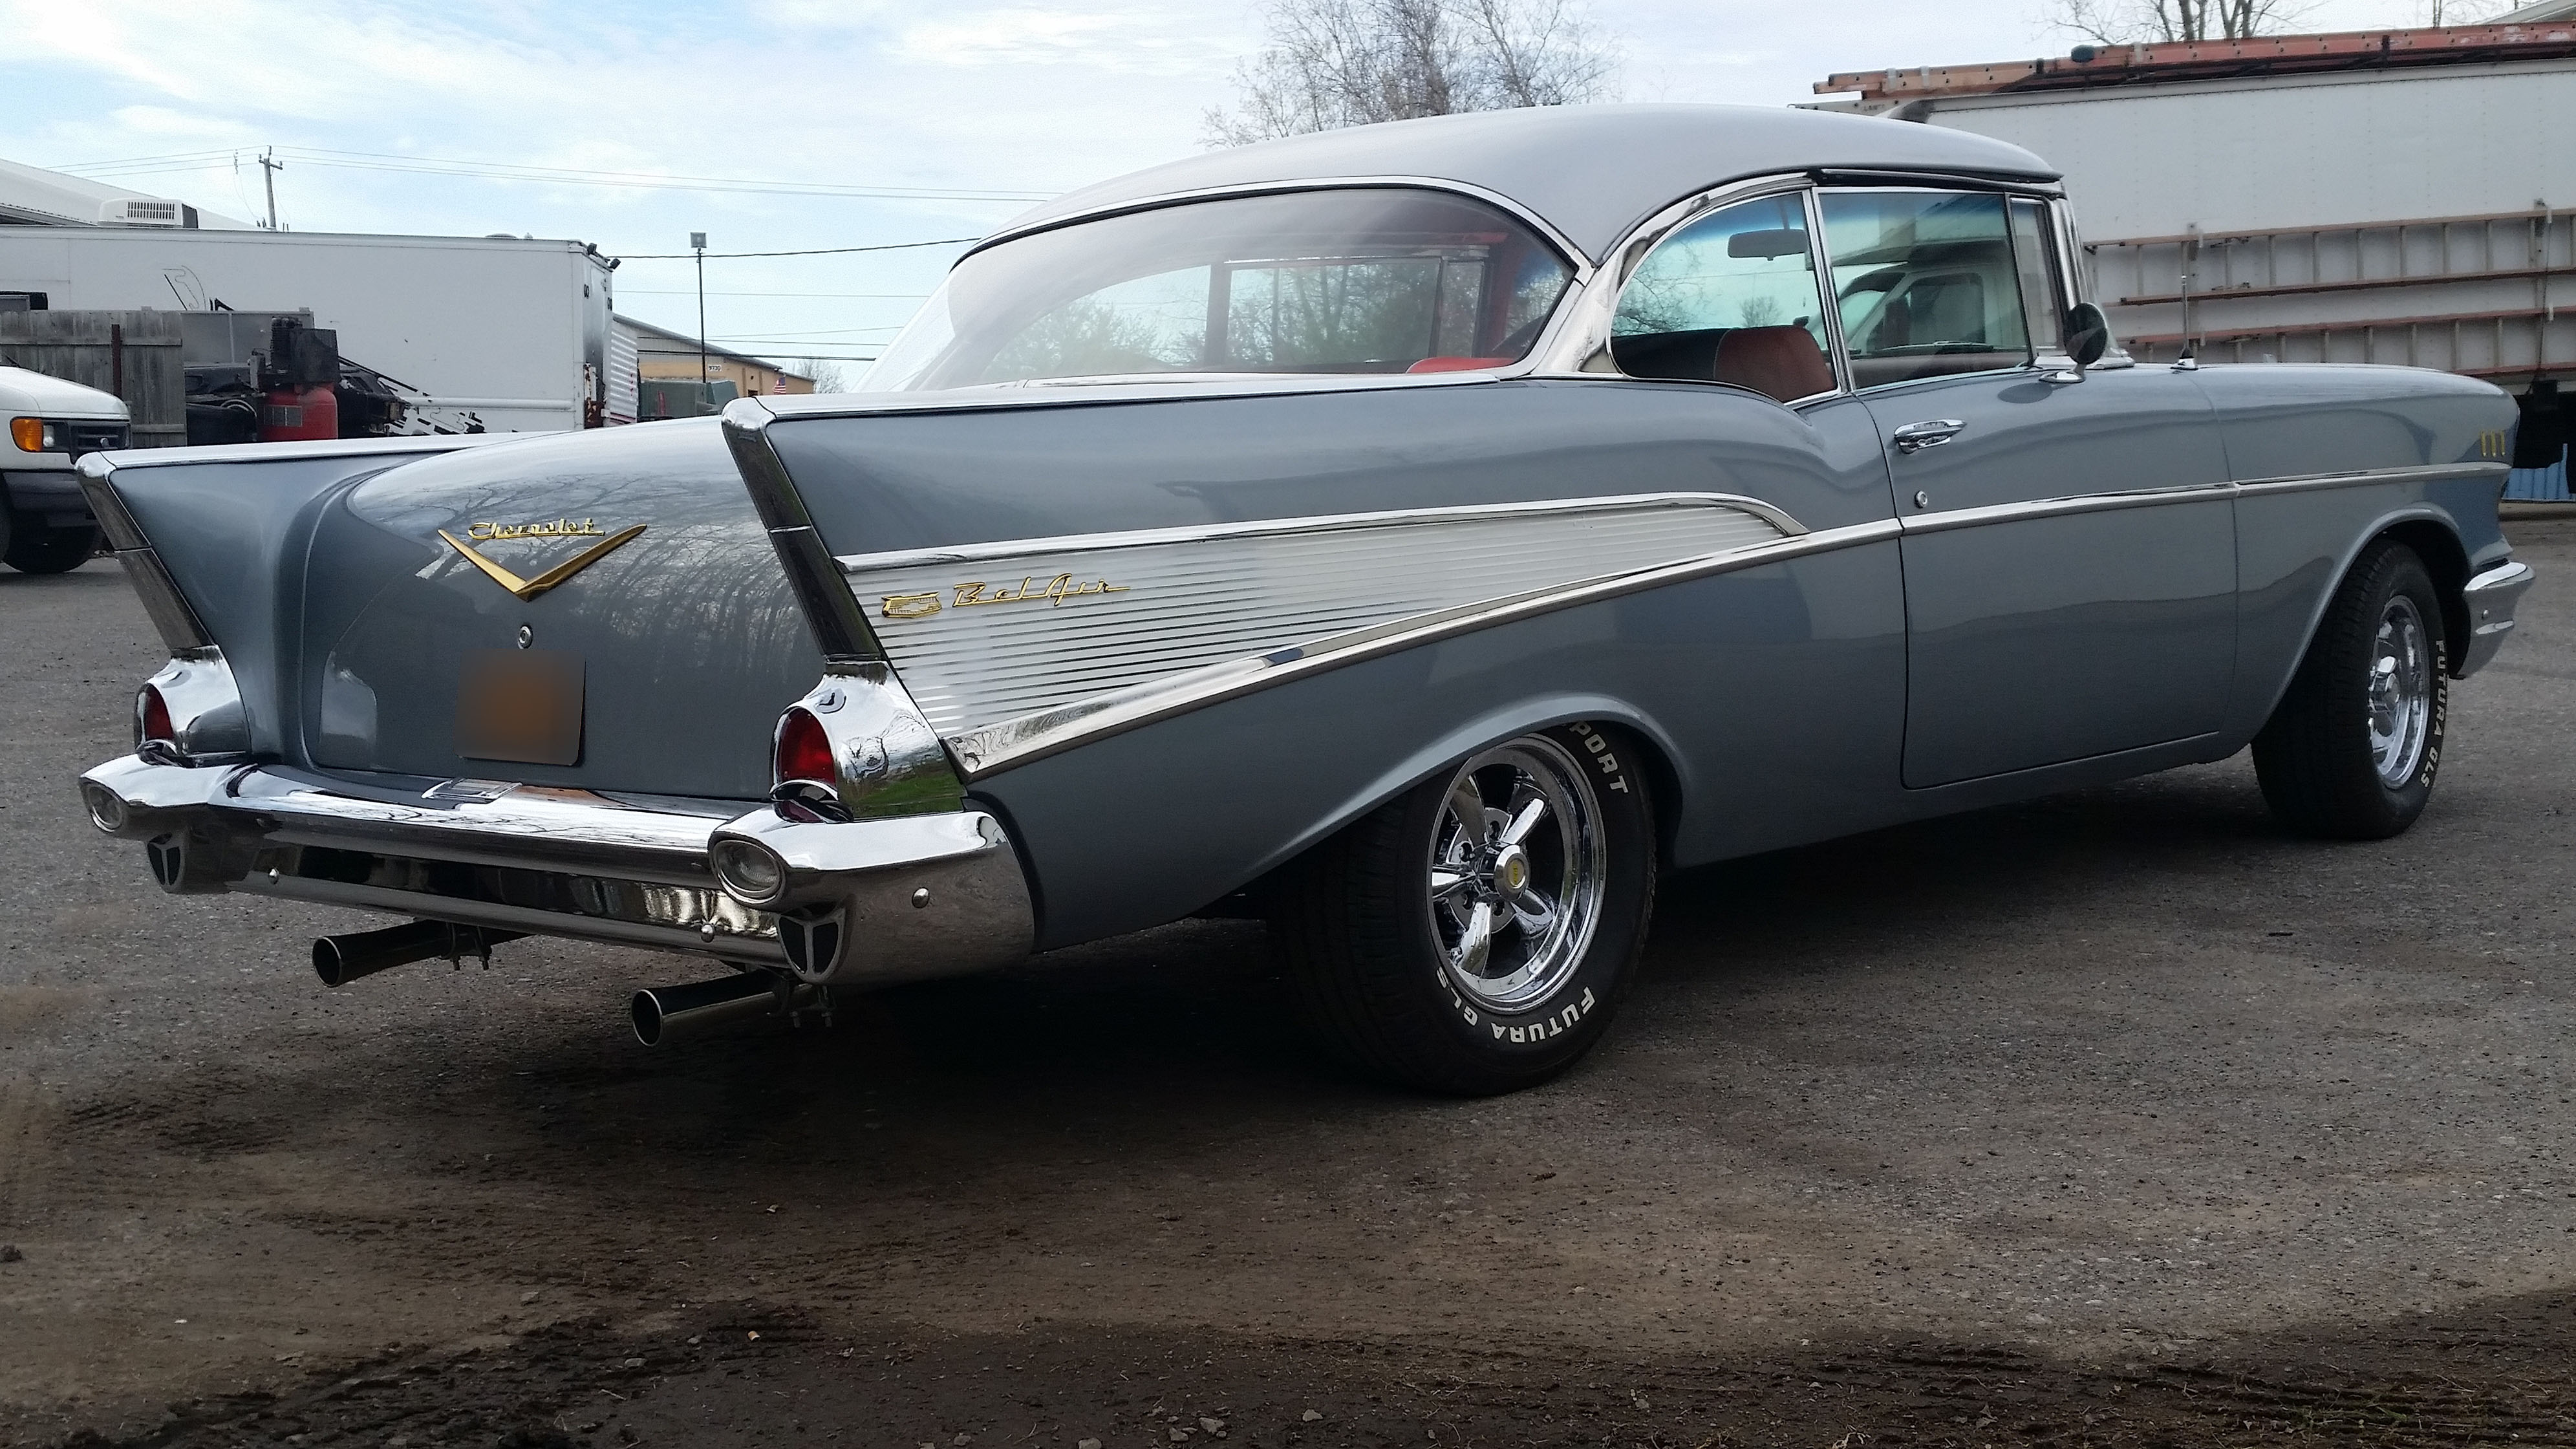 1957 Chevy Bel Air - S & S Auto Body of Clarence Inc.